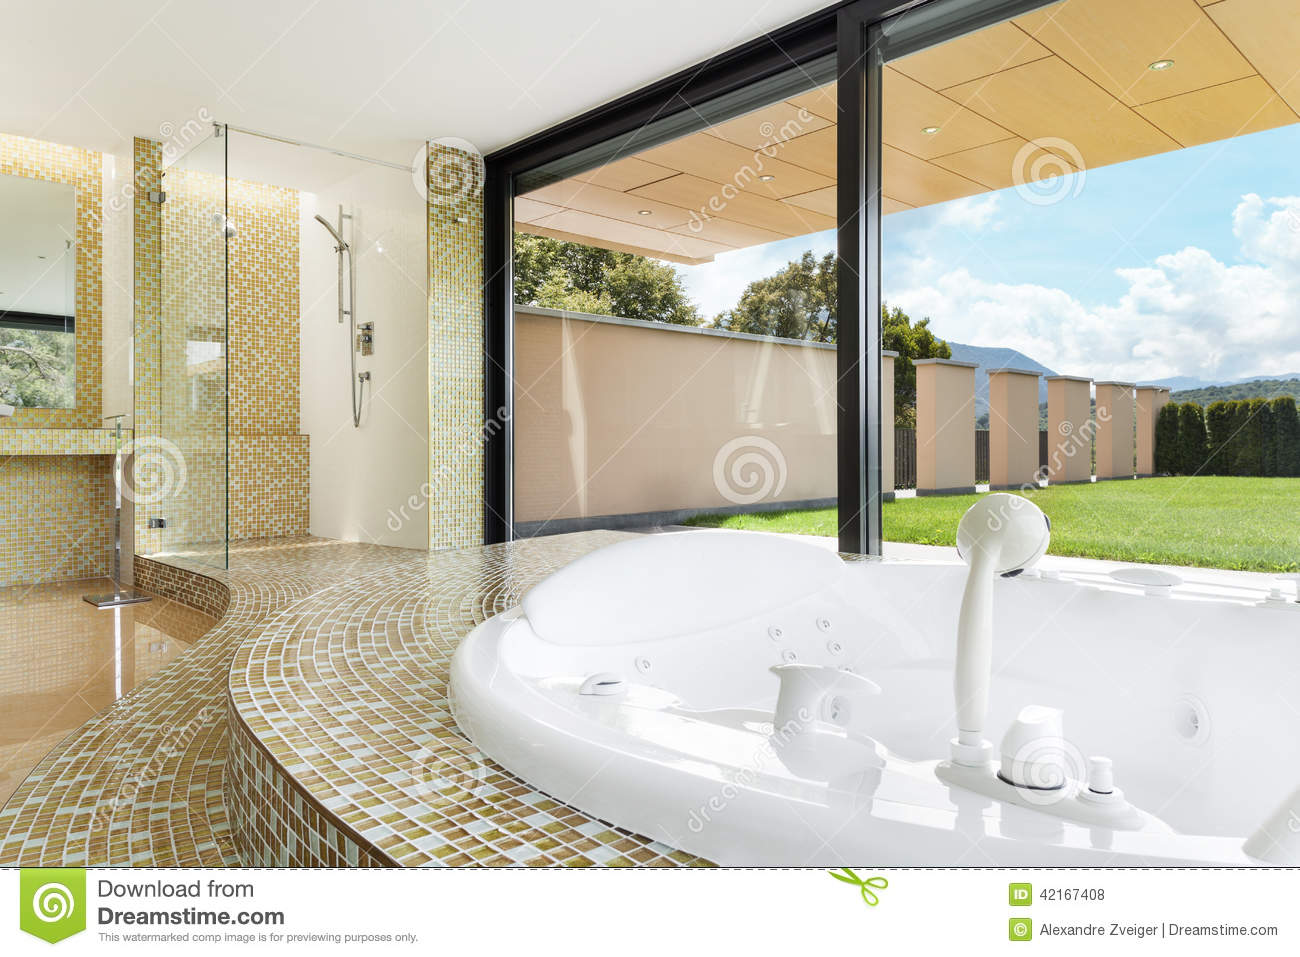 belle salle de bains avec le jacuzzi photo stock image du jacuzzi bathroom 42167408. Black Bedroom Furniture Sets. Home Design Ideas